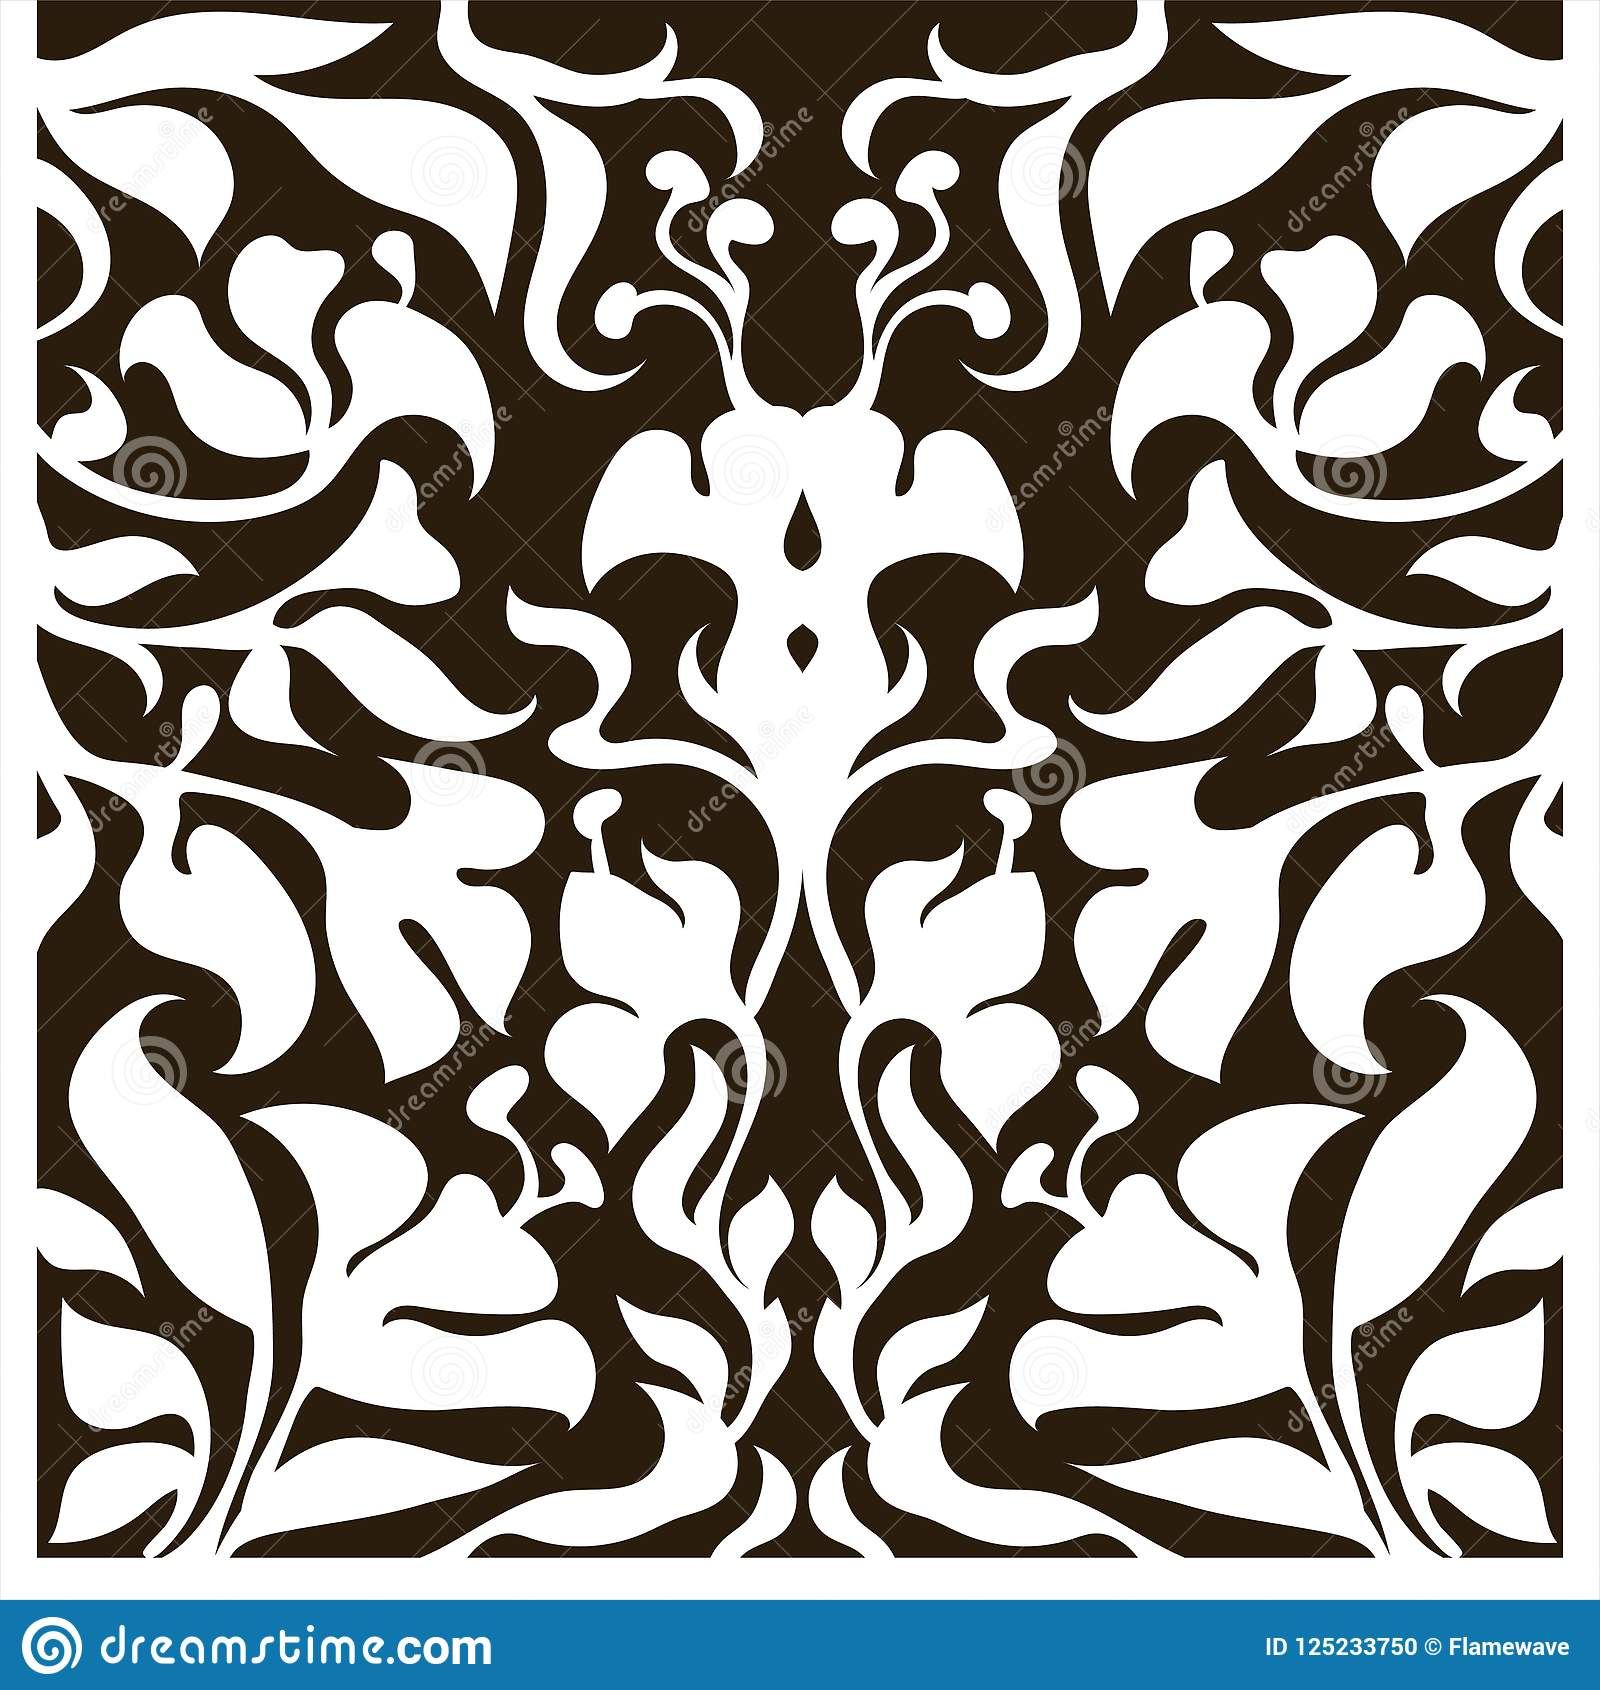 Decorative silhouette for cutting card, door, gate, window. Art Nouveau flowers pattern.